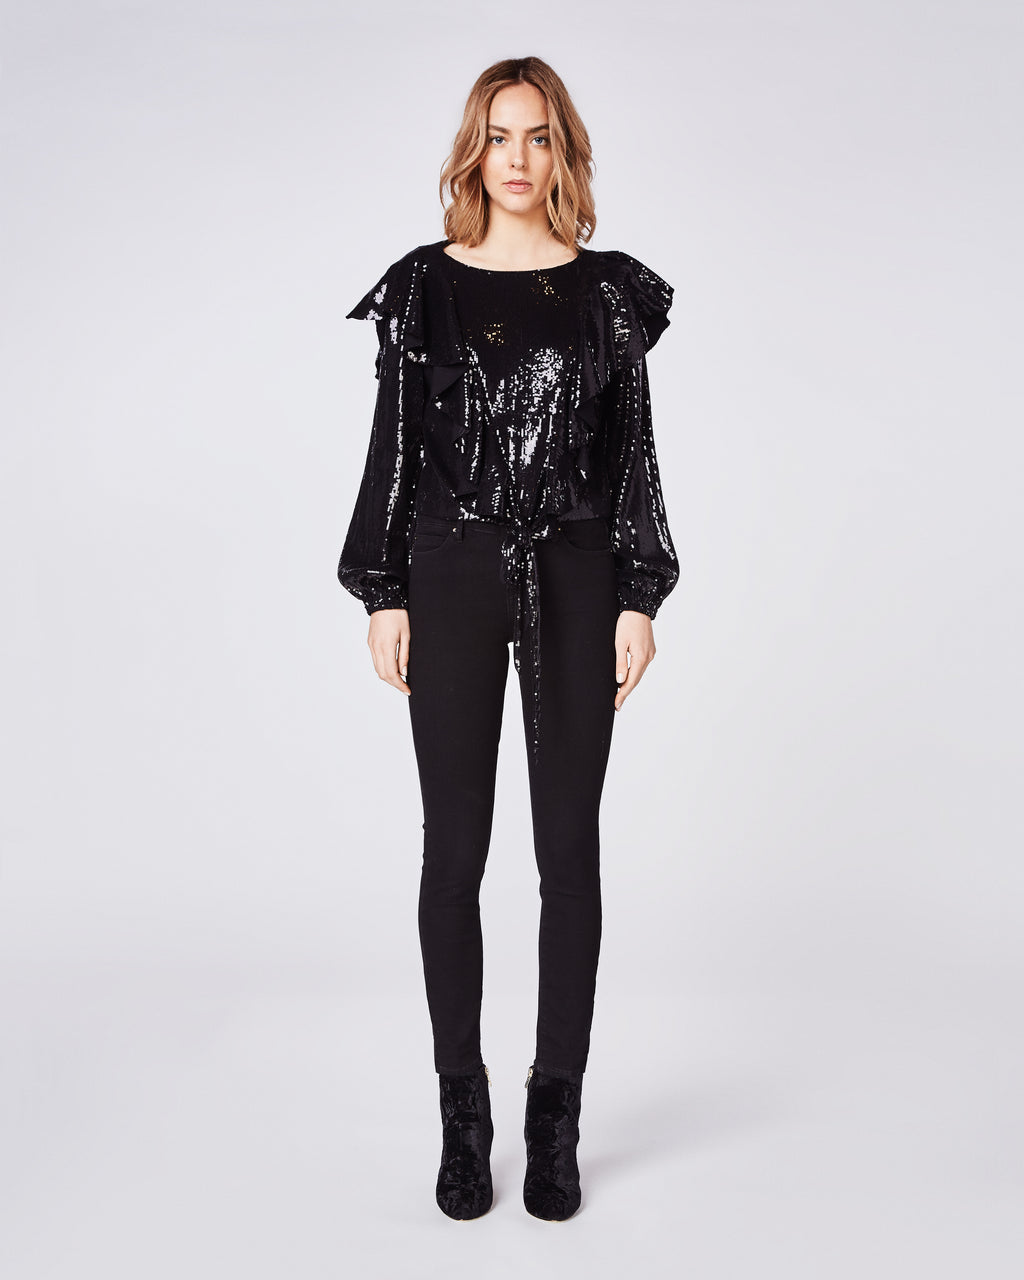 BK10267 - SEQUIN LONGSLEEVE RUFFLE BLOUSE - tops - blouses - The ultimate make-a-statement top featuring sequins, ruffles, and bell sleeves. The tie front detail makes for a flattering fit. Final Sale